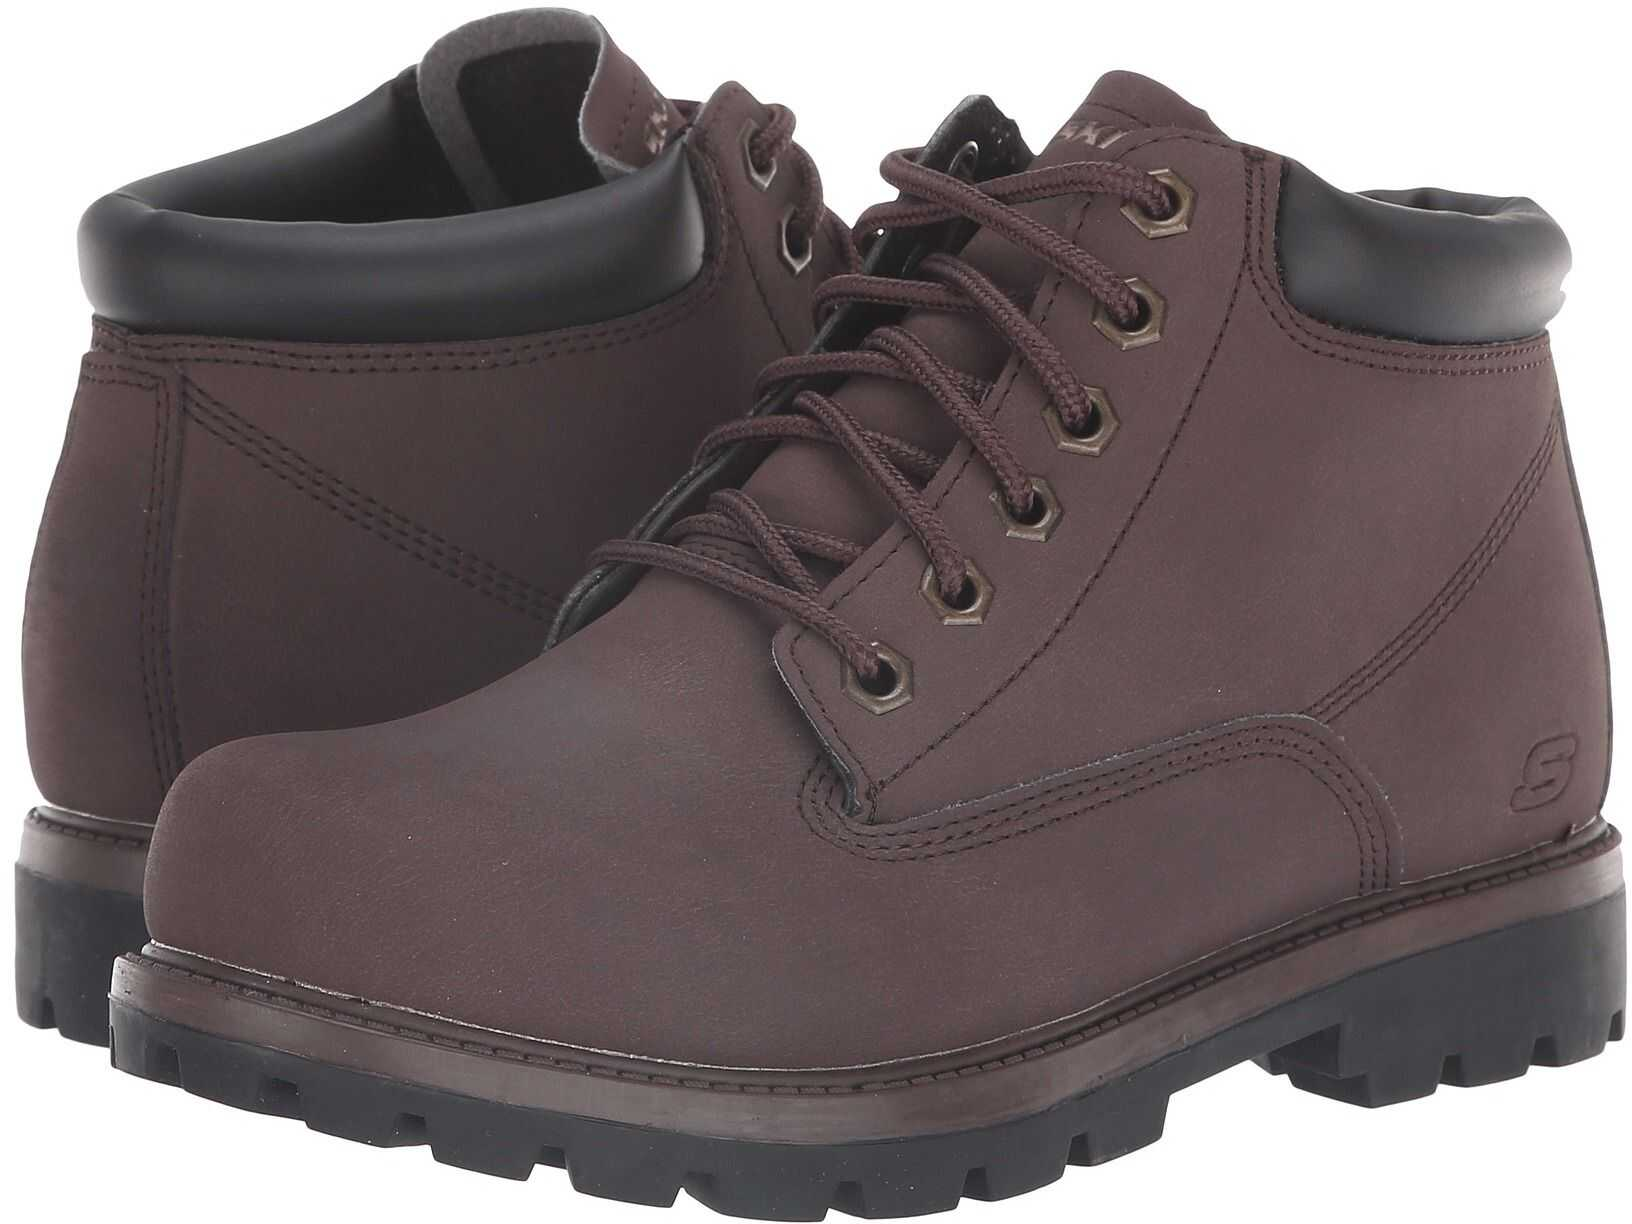 SKECHERS Relaxed Fit Toric Amado Chocolate